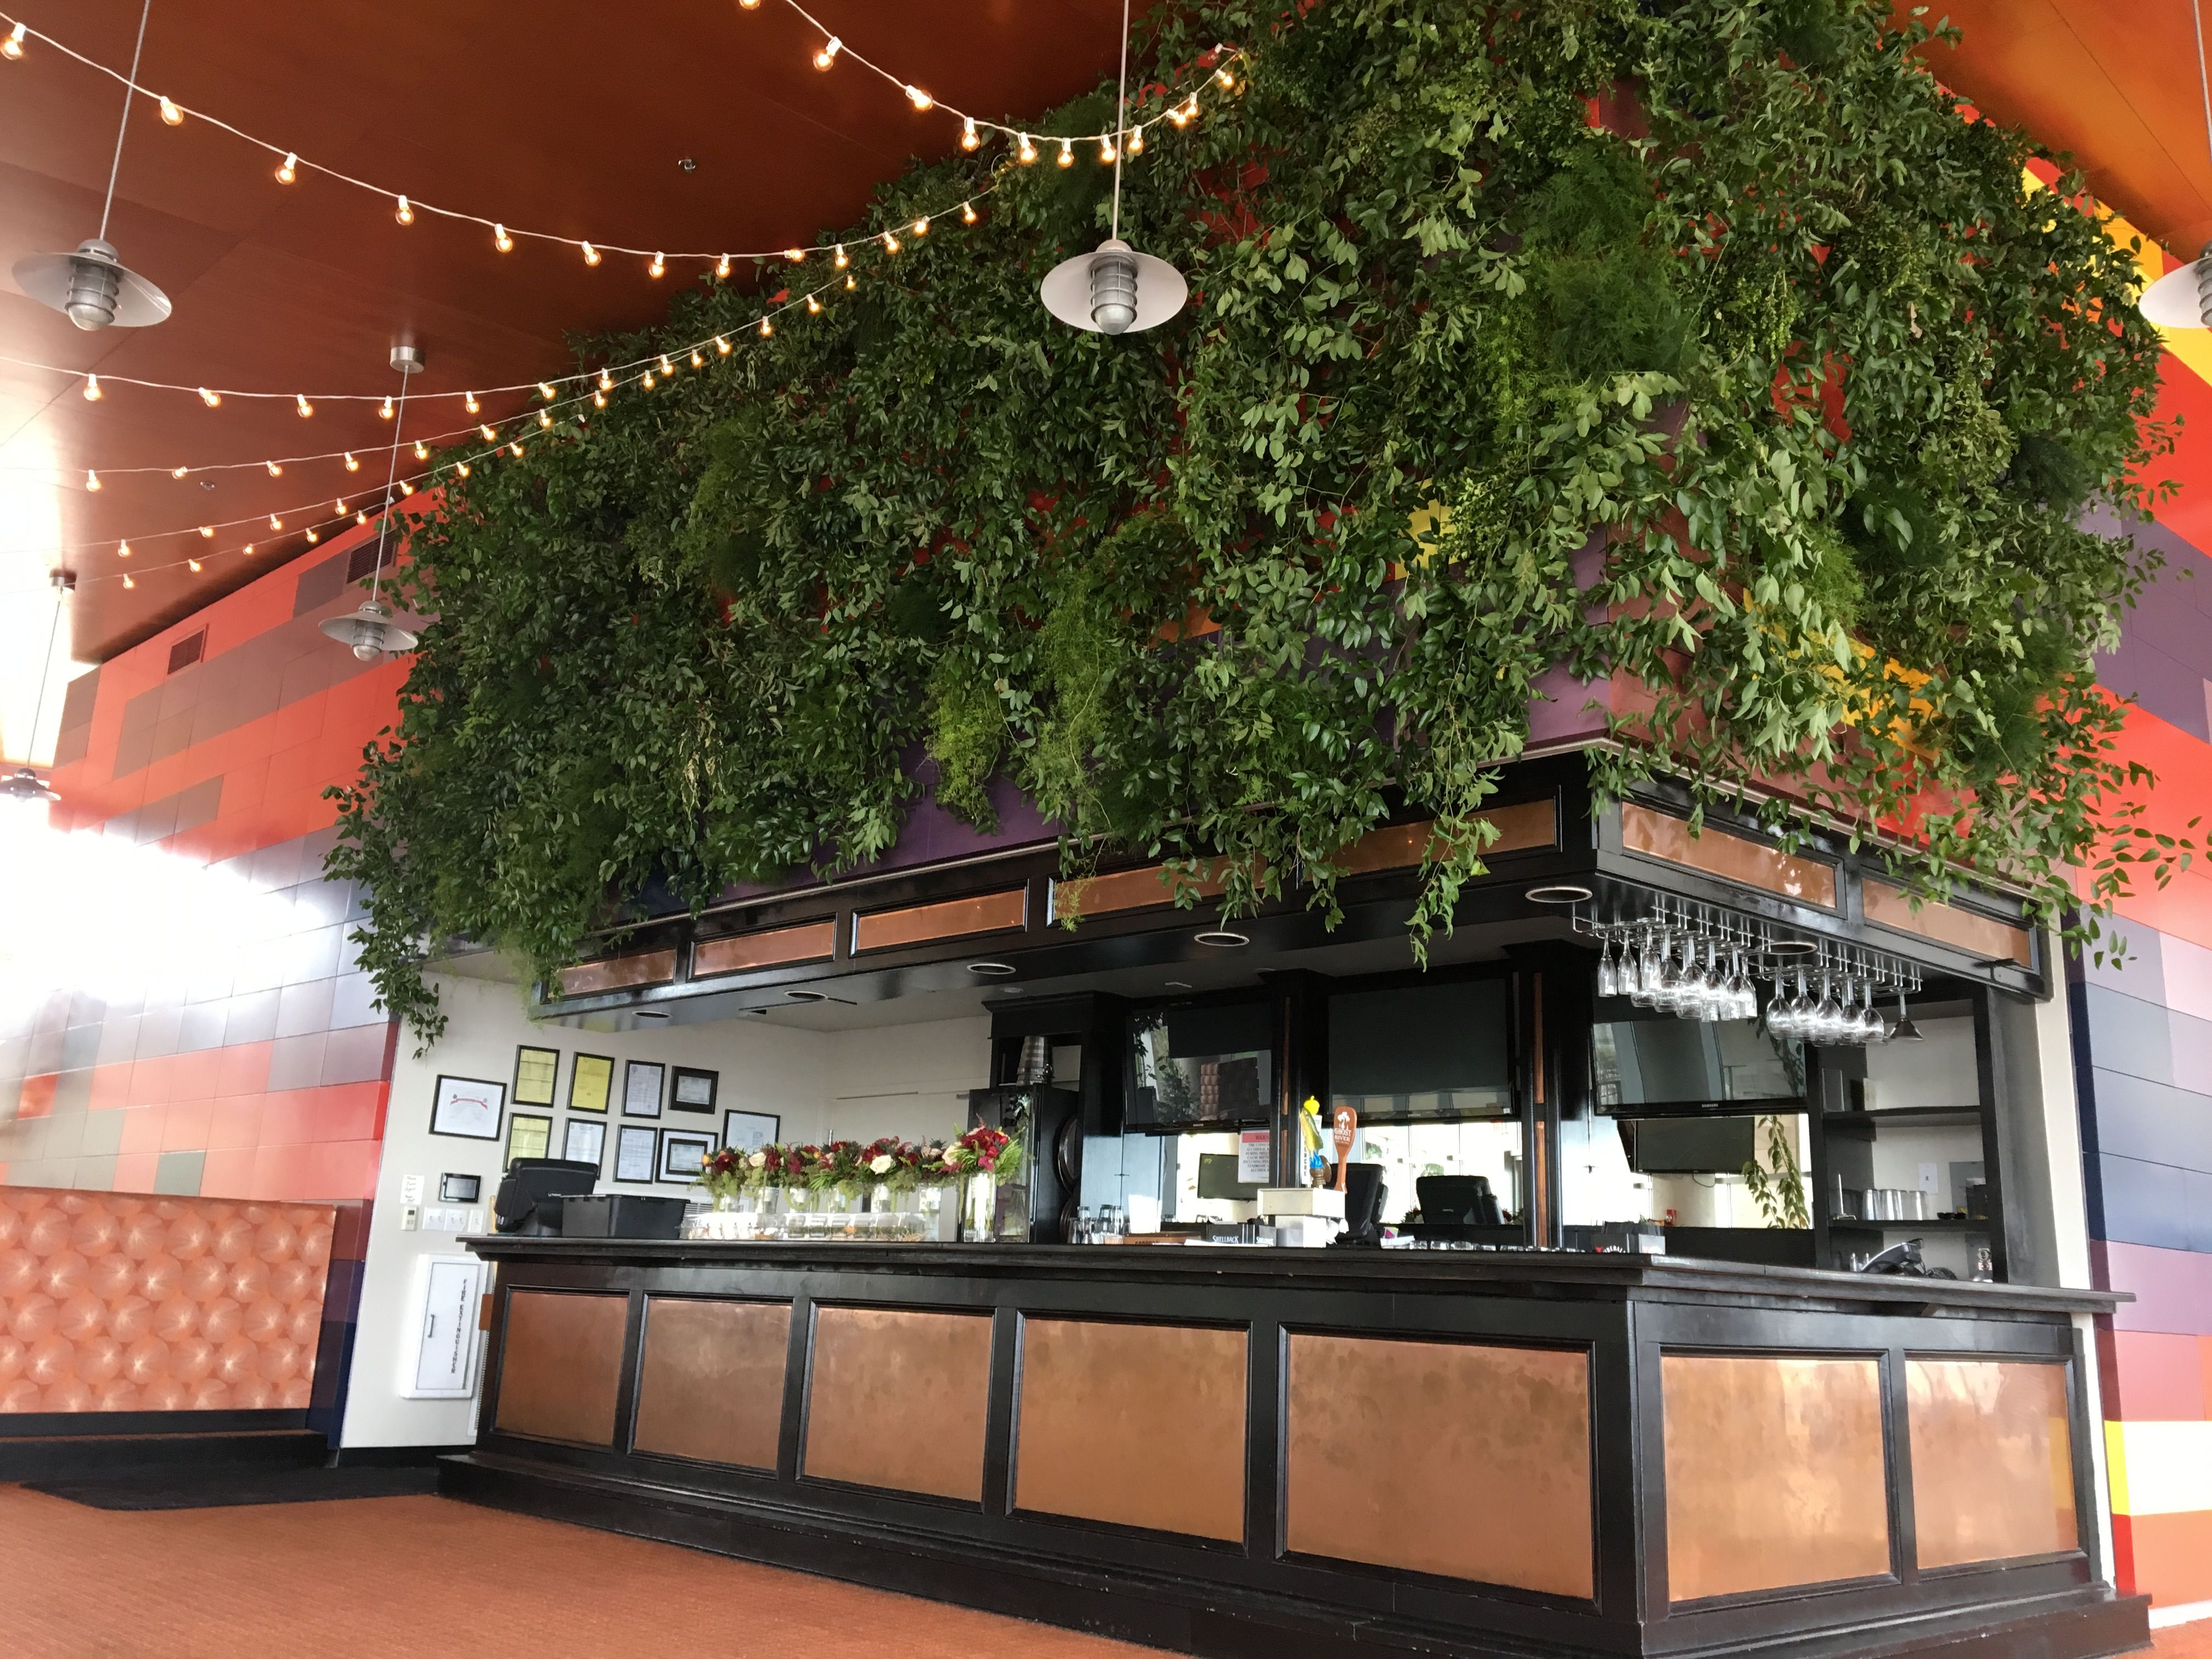 Even in the most obscure places we can bring the outside in! A live green wall to warm up this space here at Beale St. Landing. Custom Design by Holliday Flowers and Events Team